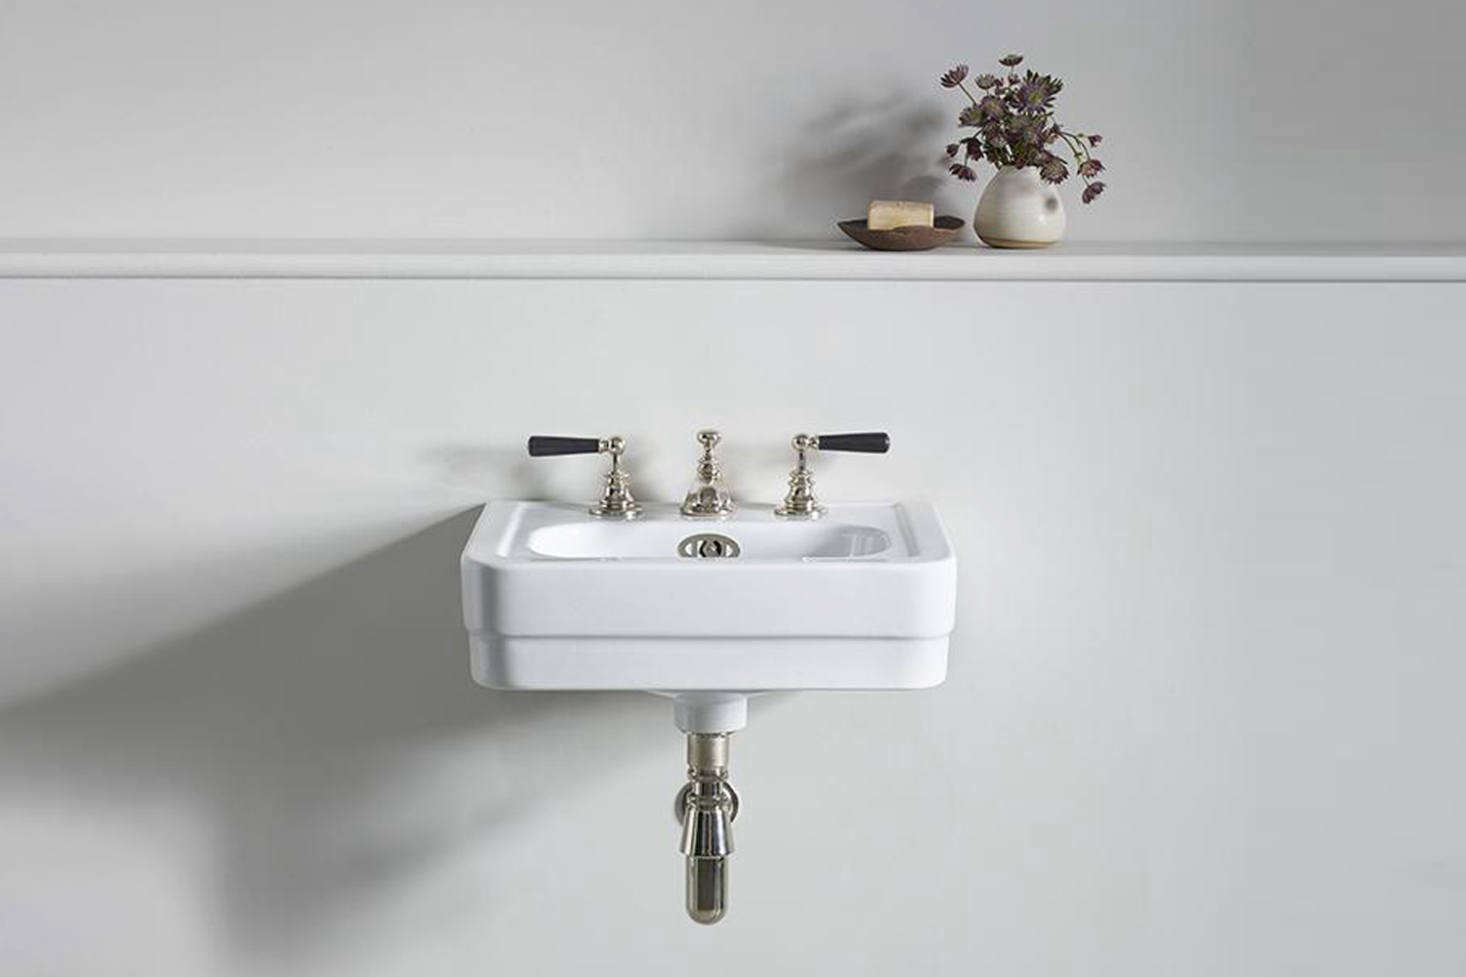 Antique Inspired Sinks for the Bath